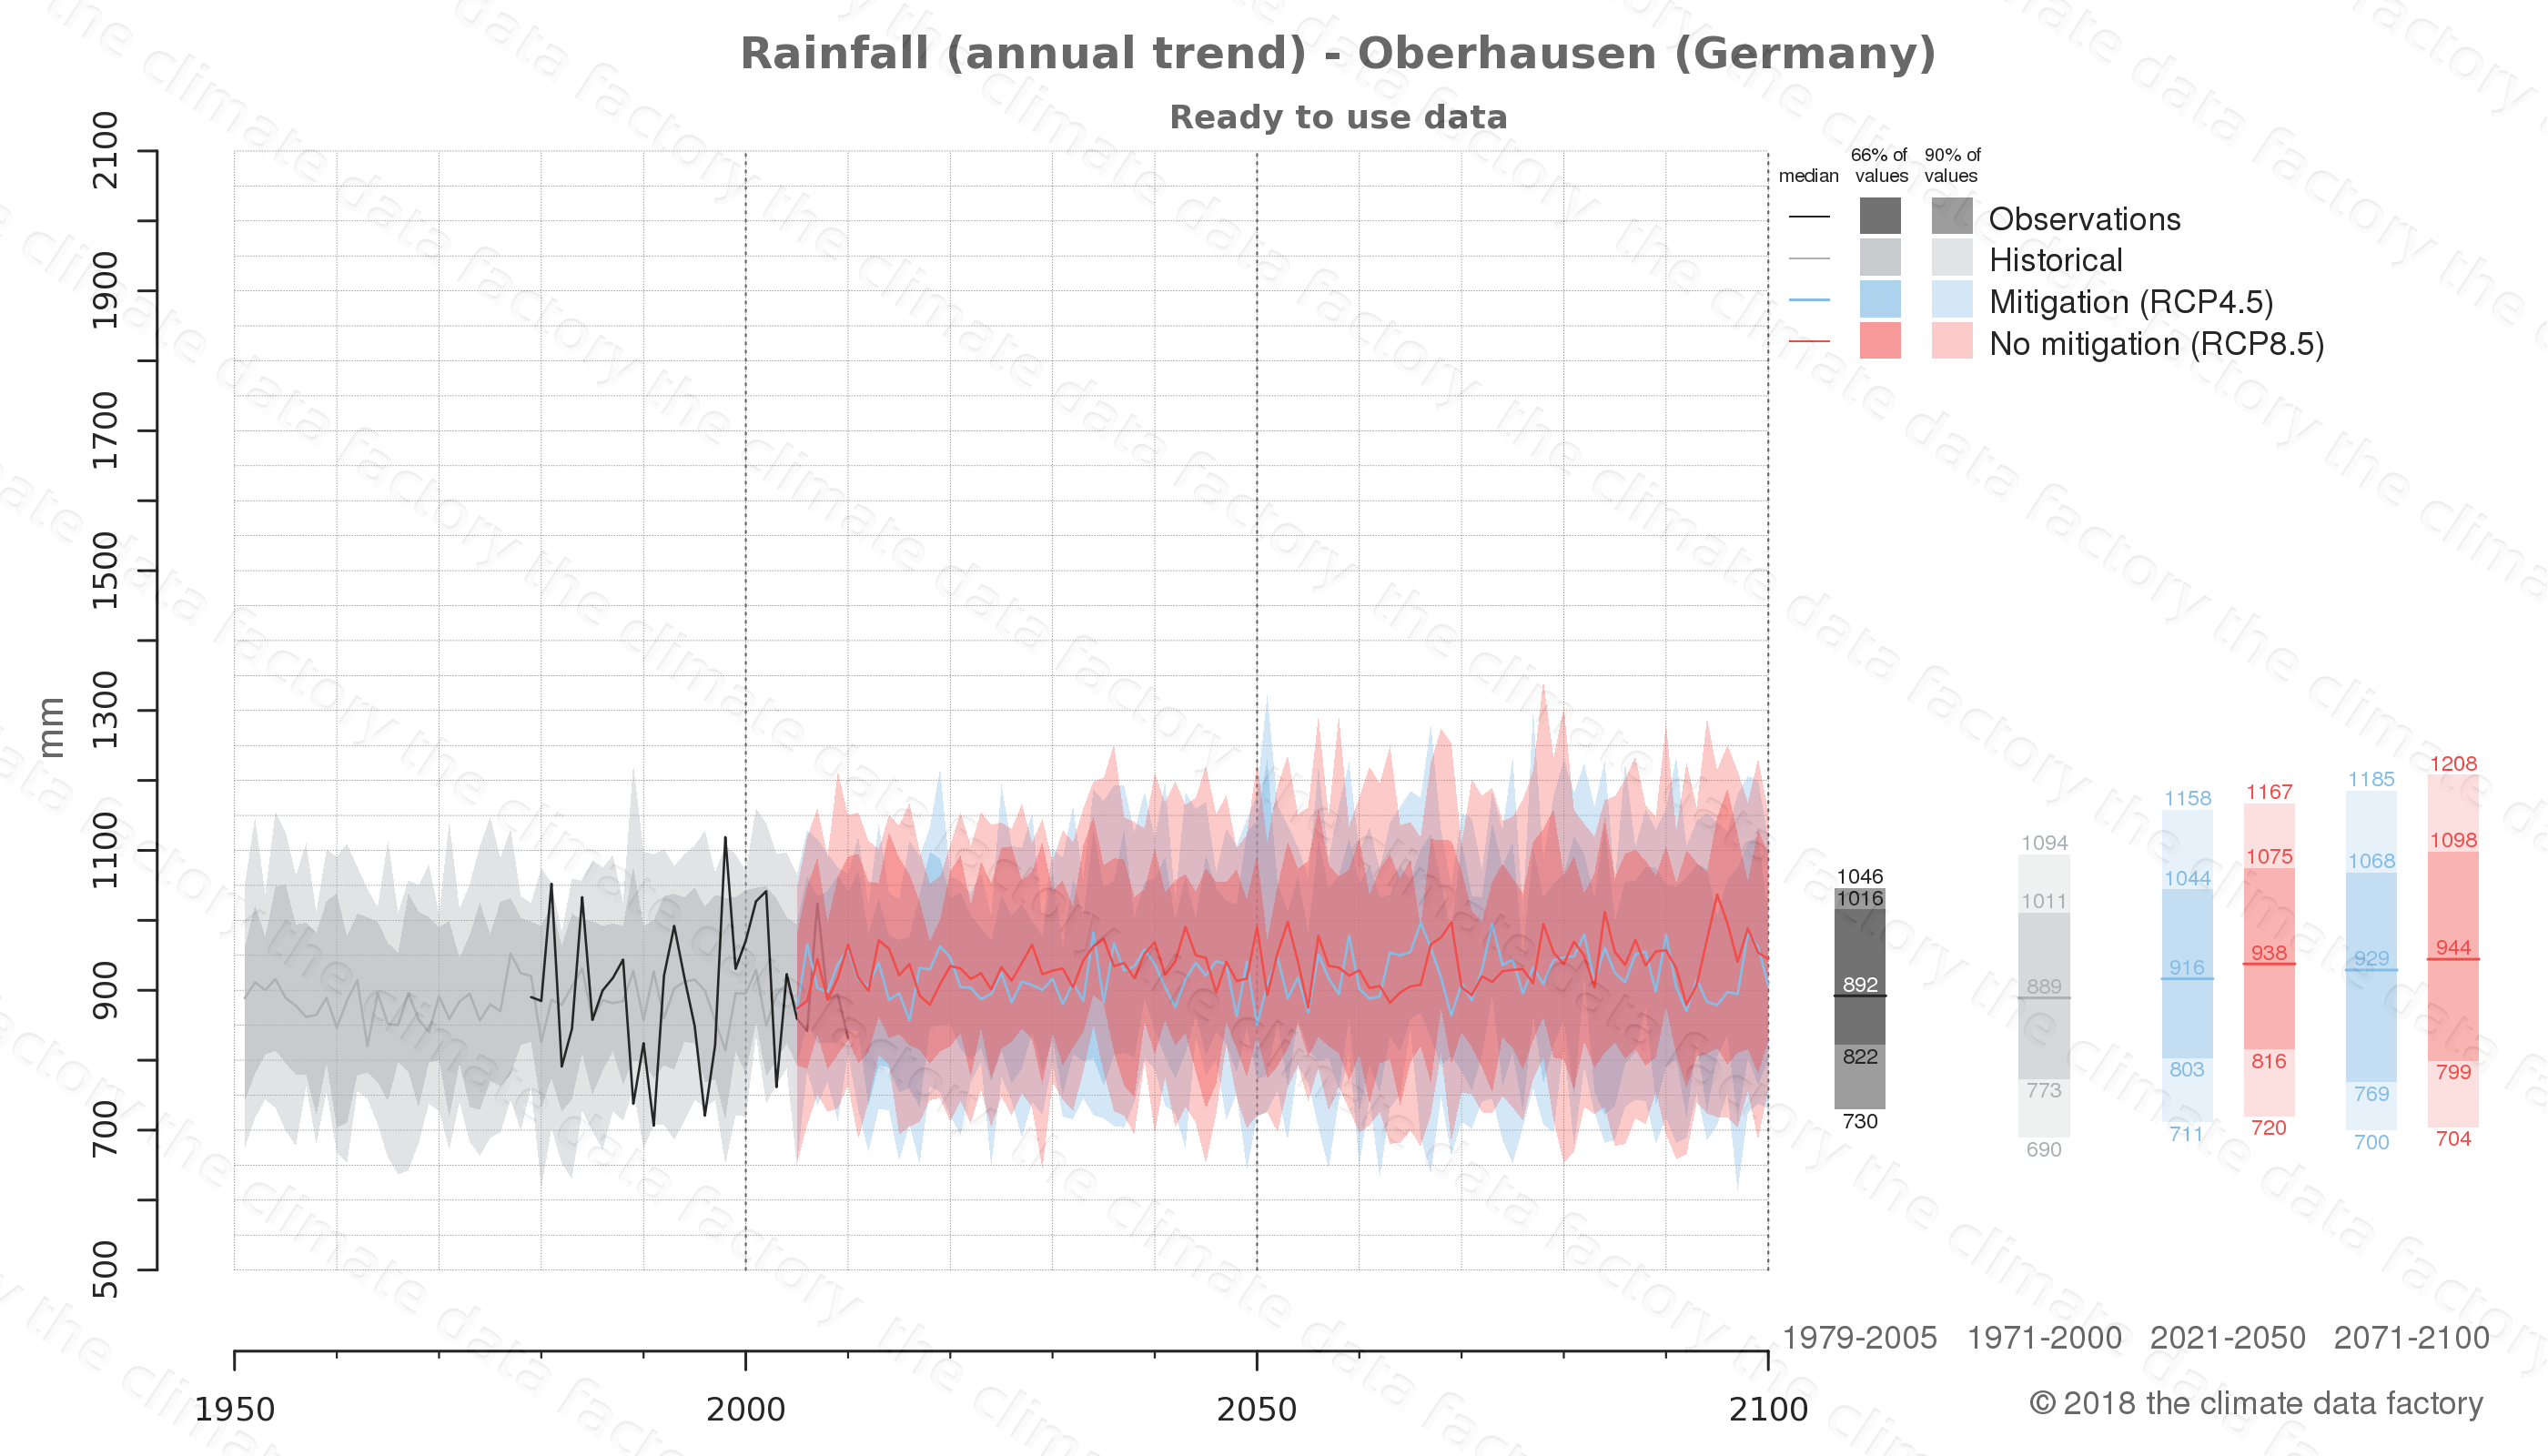 climate change data policy adaptation climate graph city data rainfall oberhausen germany